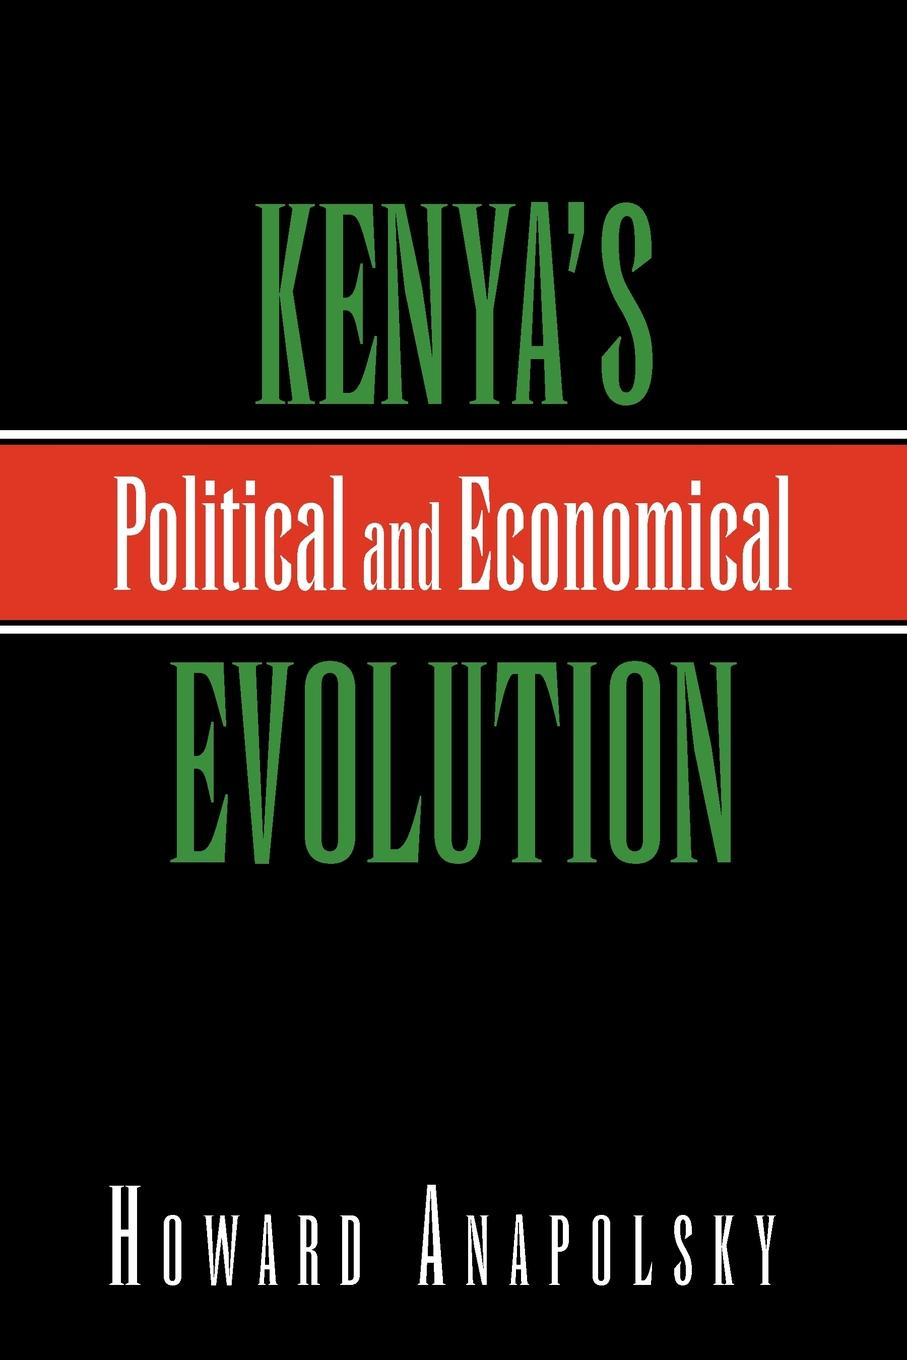 Howard Anapolsky Kenya's Political and Economical Evolution